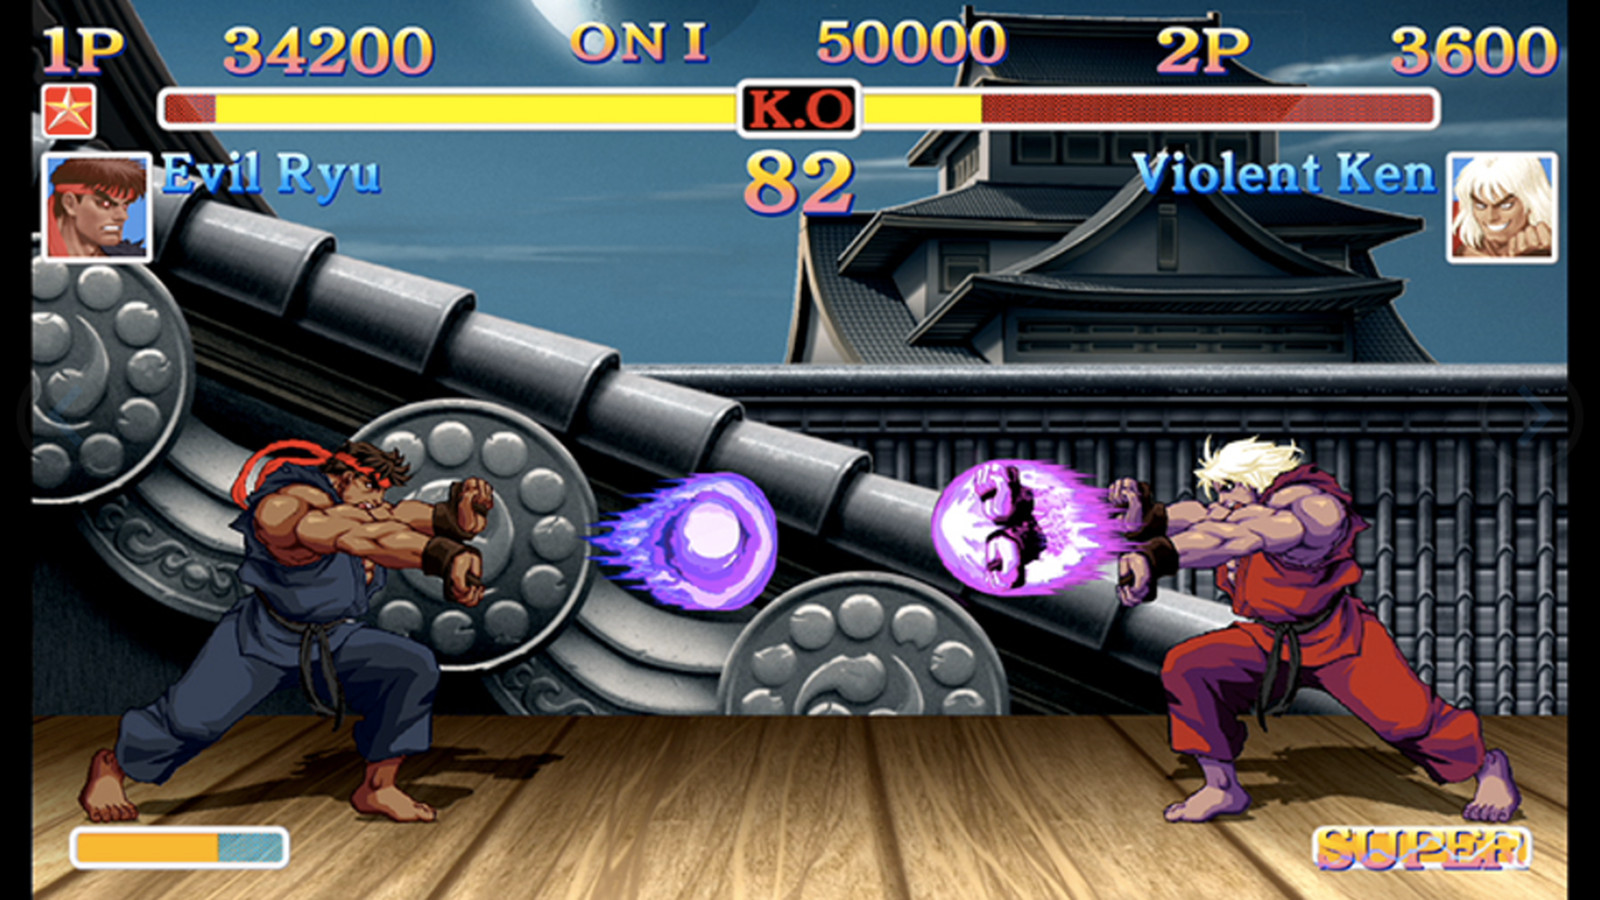 'Ultra Street Fighter II' for Nintendo Switch is the first true portable fighting game